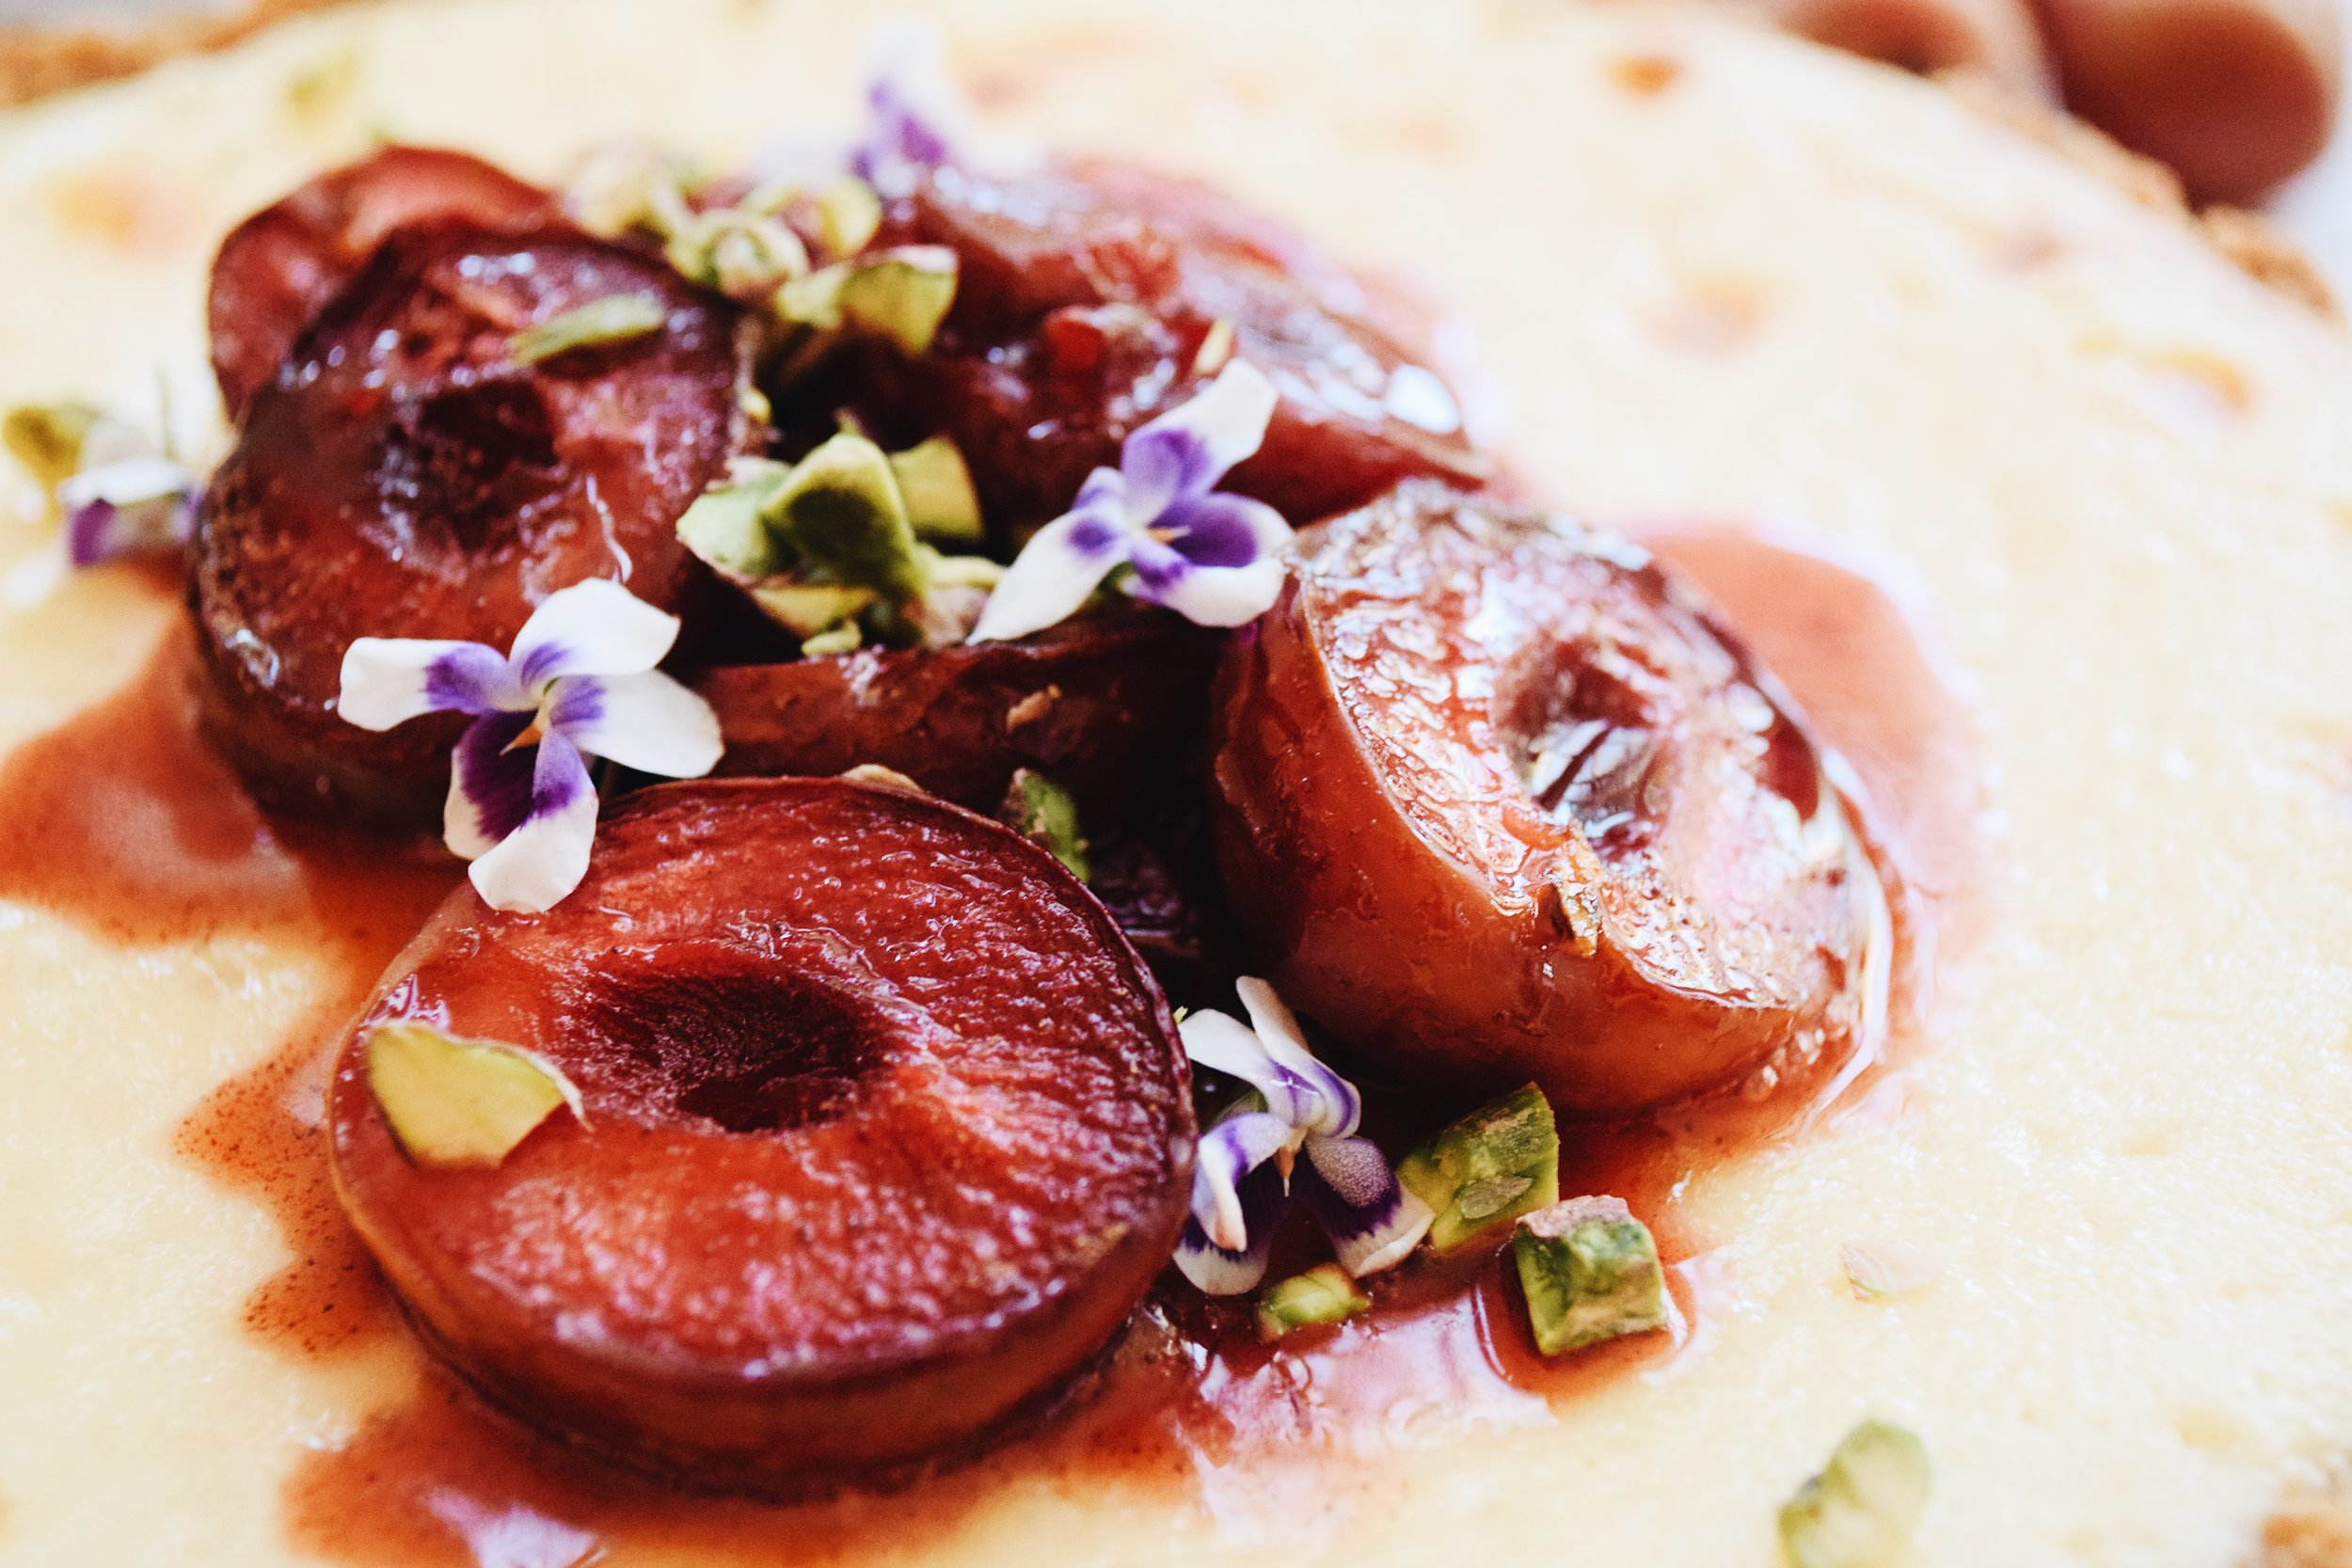 roasted plums with pistachios